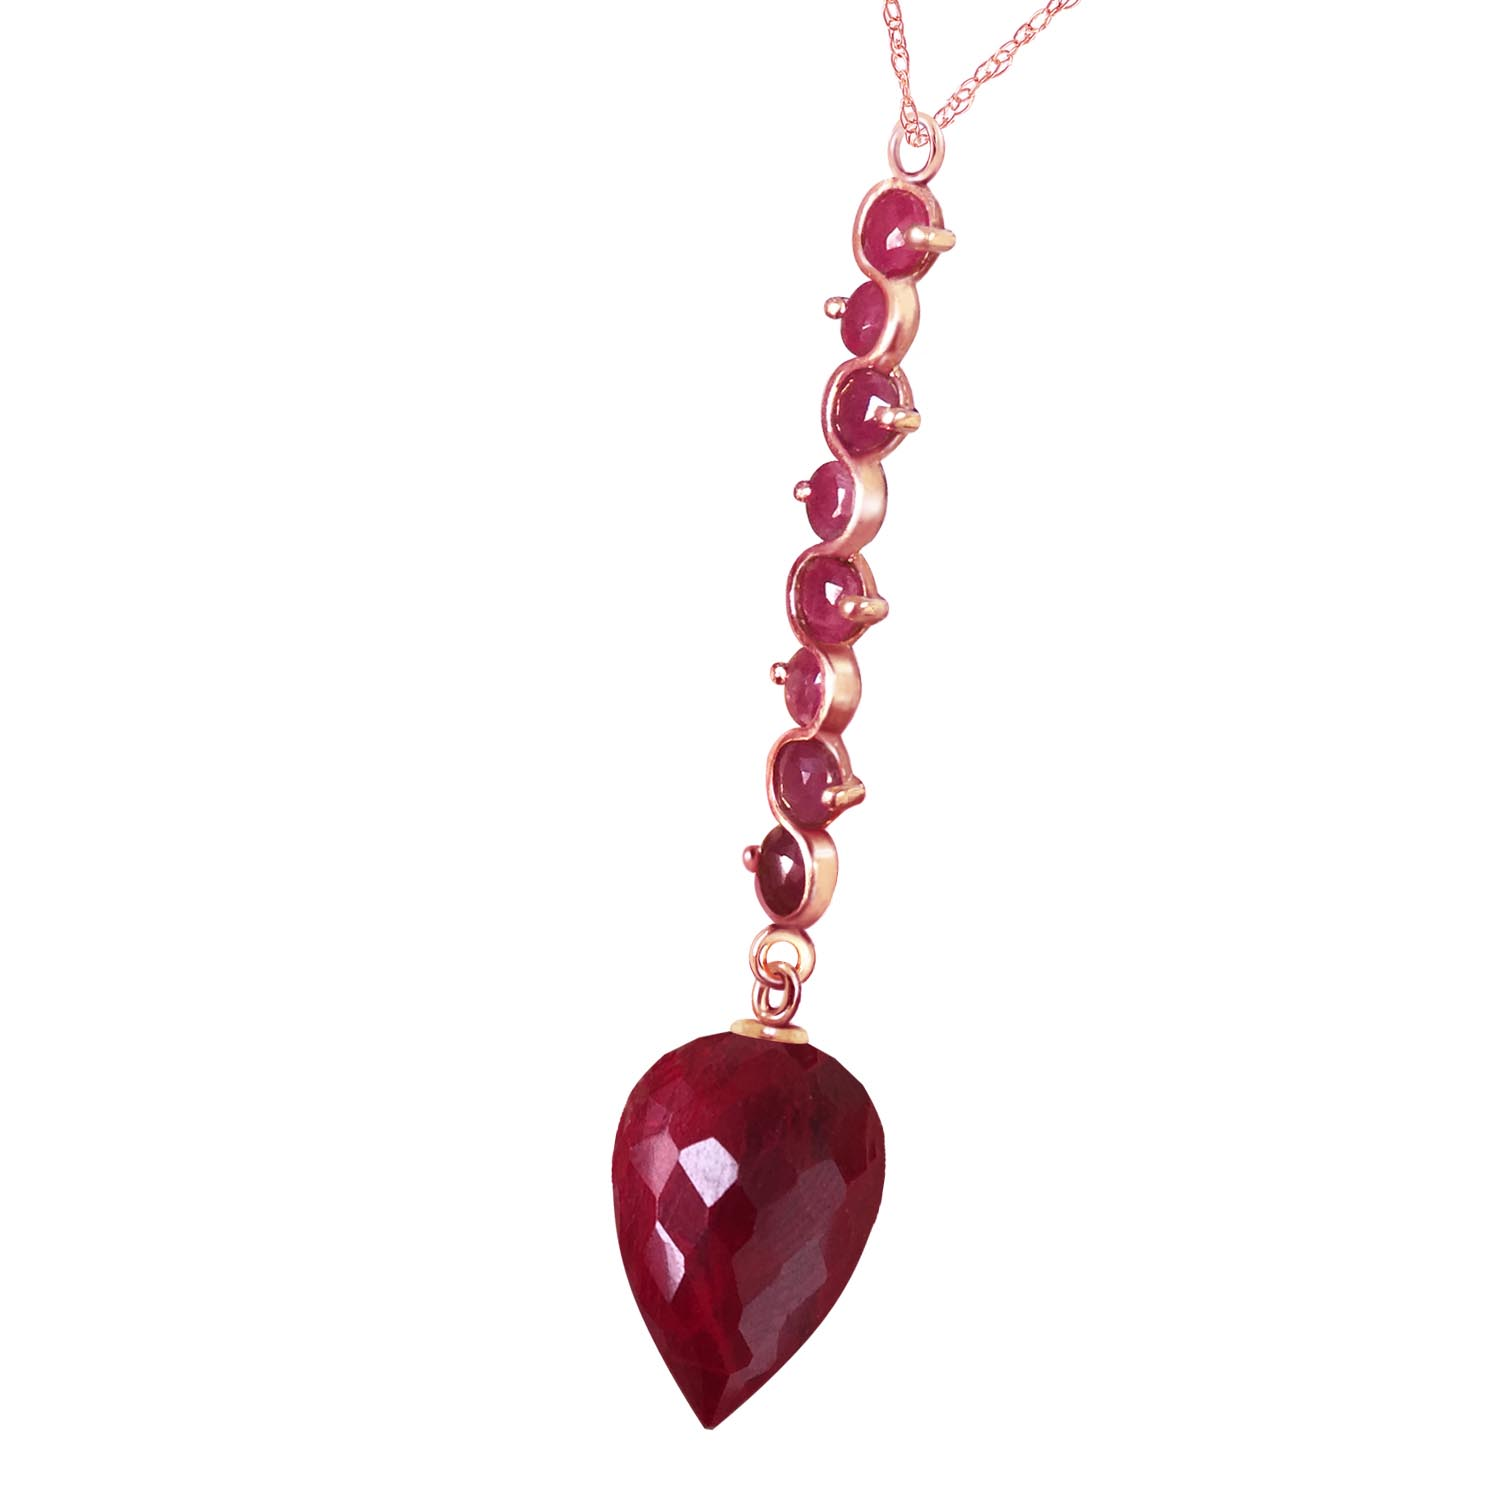 Ruby Briolette Pendant Necklace 14.55ctw in 9ct Rose Gold